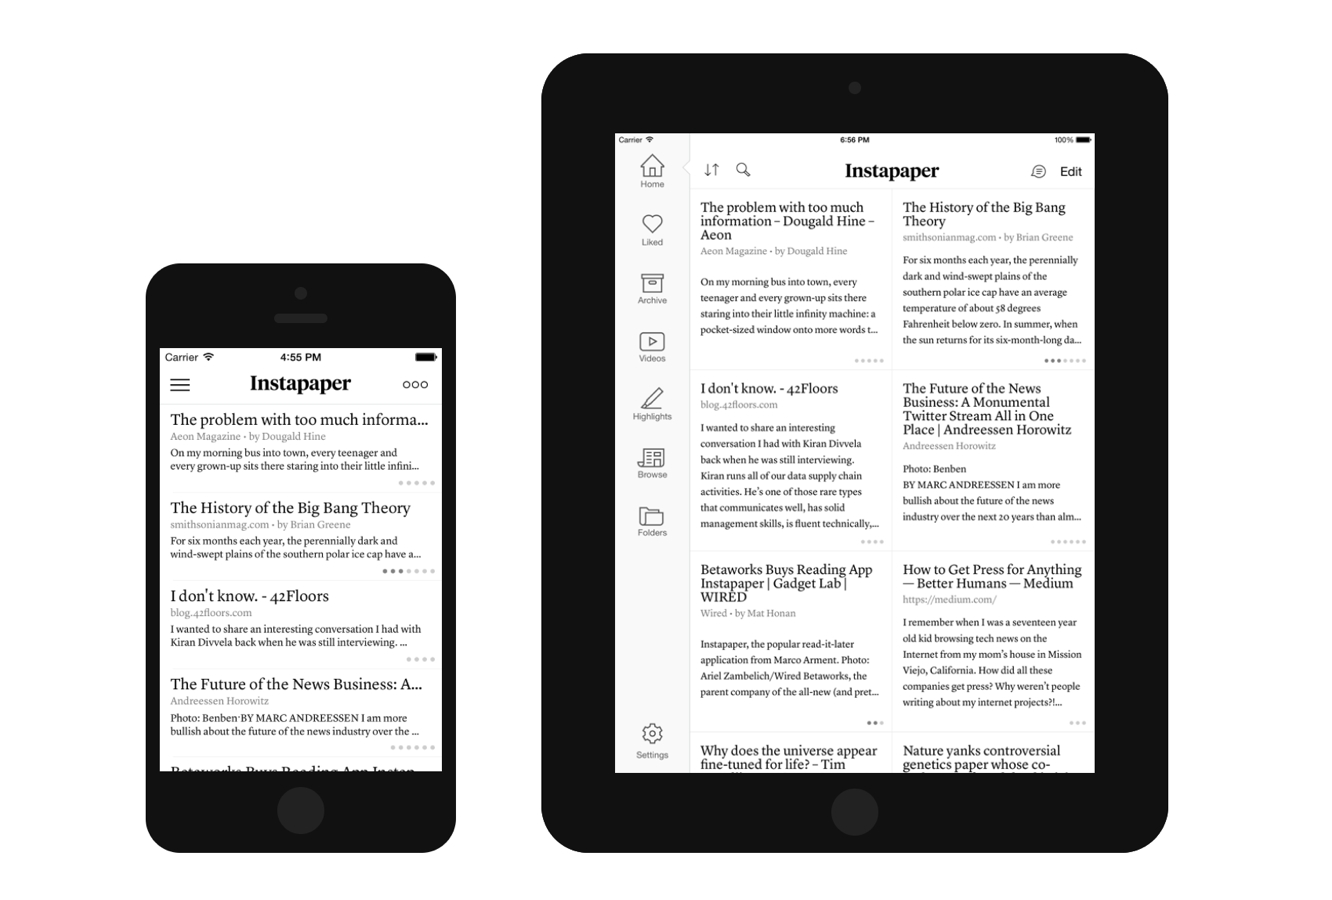 Instapaper parts ways with Pinterest to go it on its own